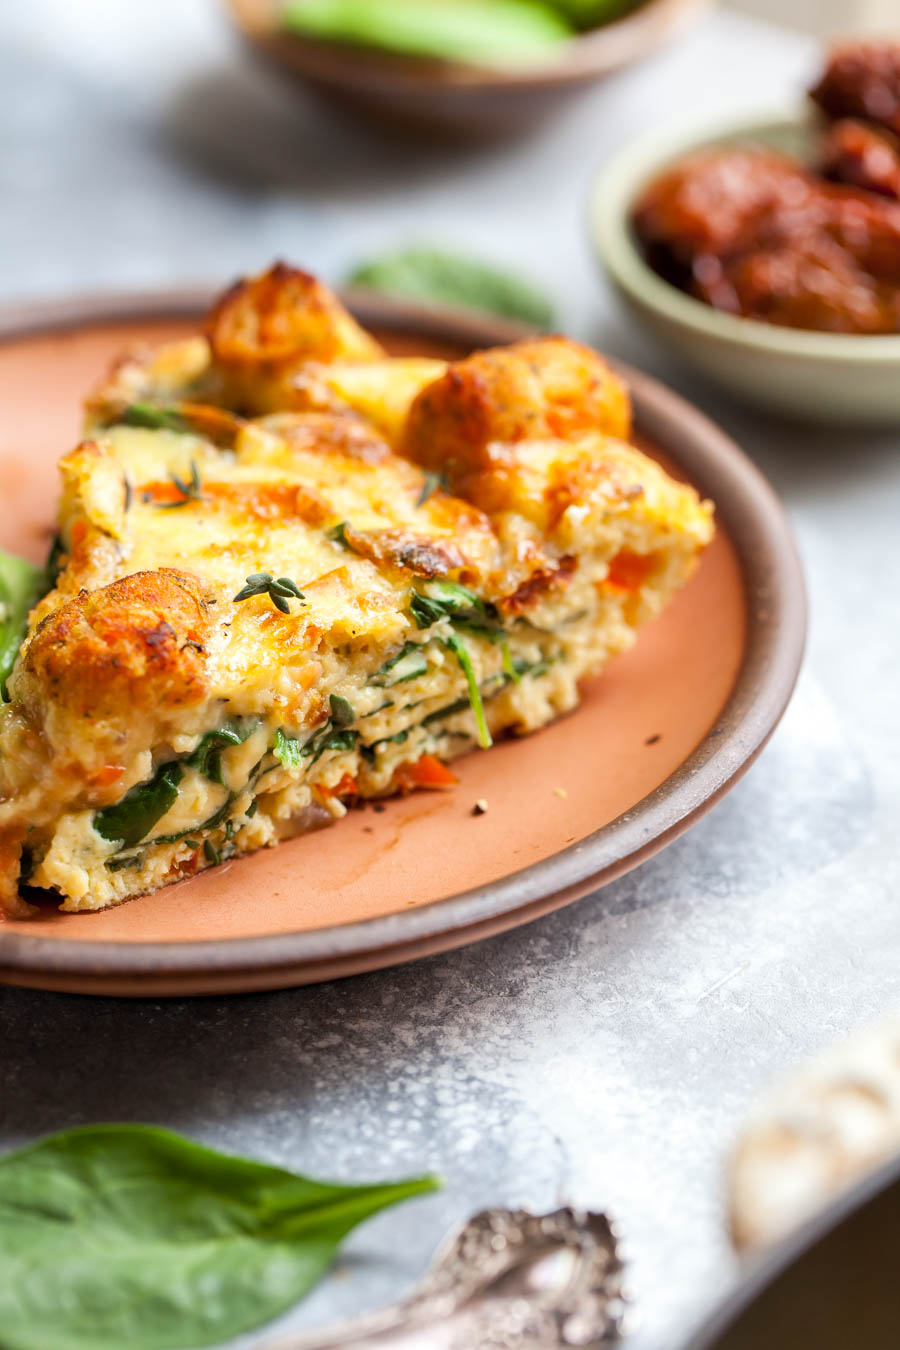 Cheesy Breakfast Bake with Vegetables and Tater Tots